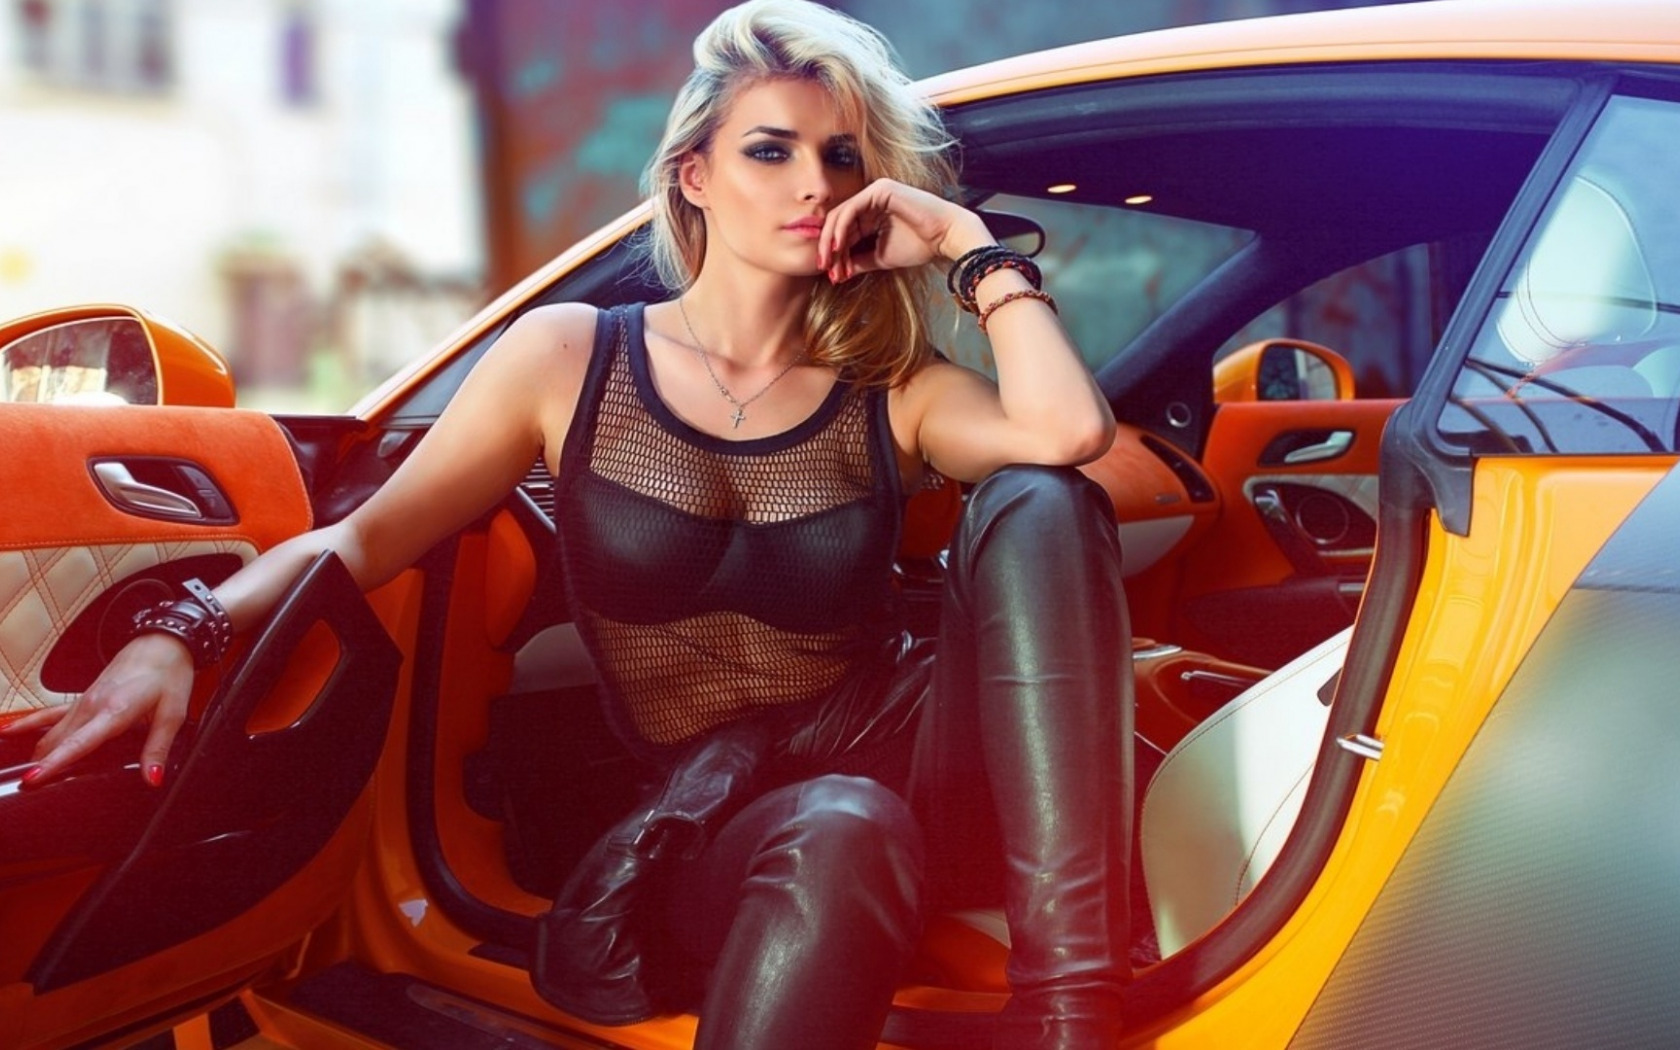 Sexy Girls And Cars Wallpaper Wallpapers